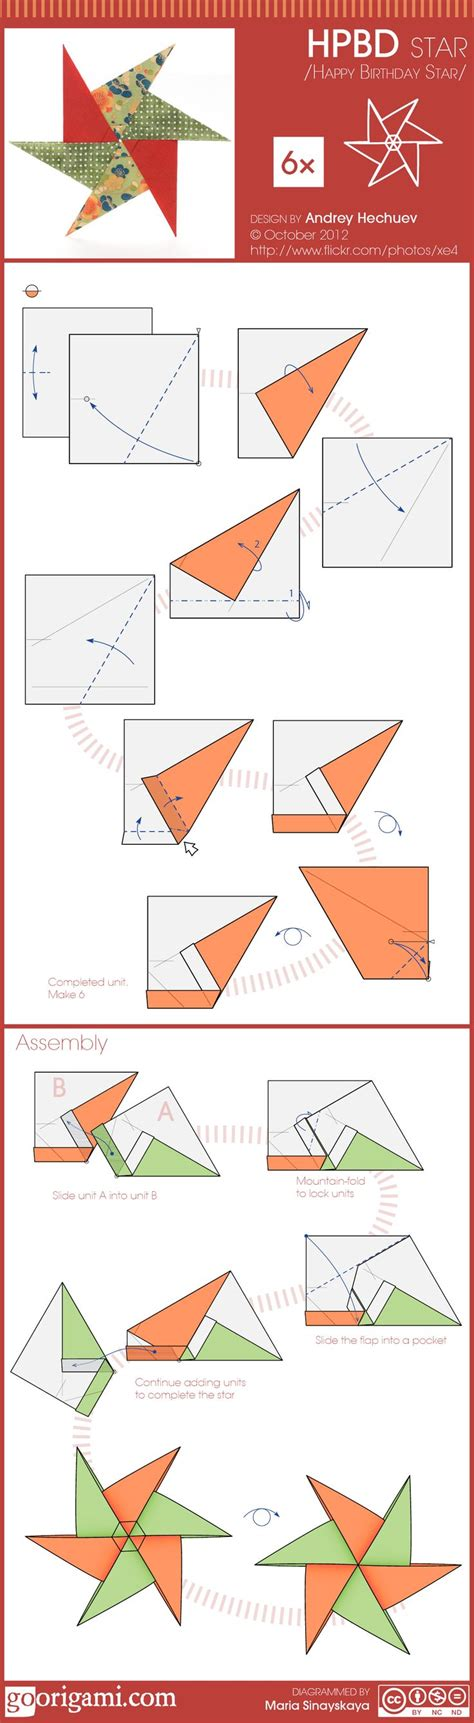 How To Make A Paper 6 Pointed - learn how to fold 6 pointed hpbd origami design by